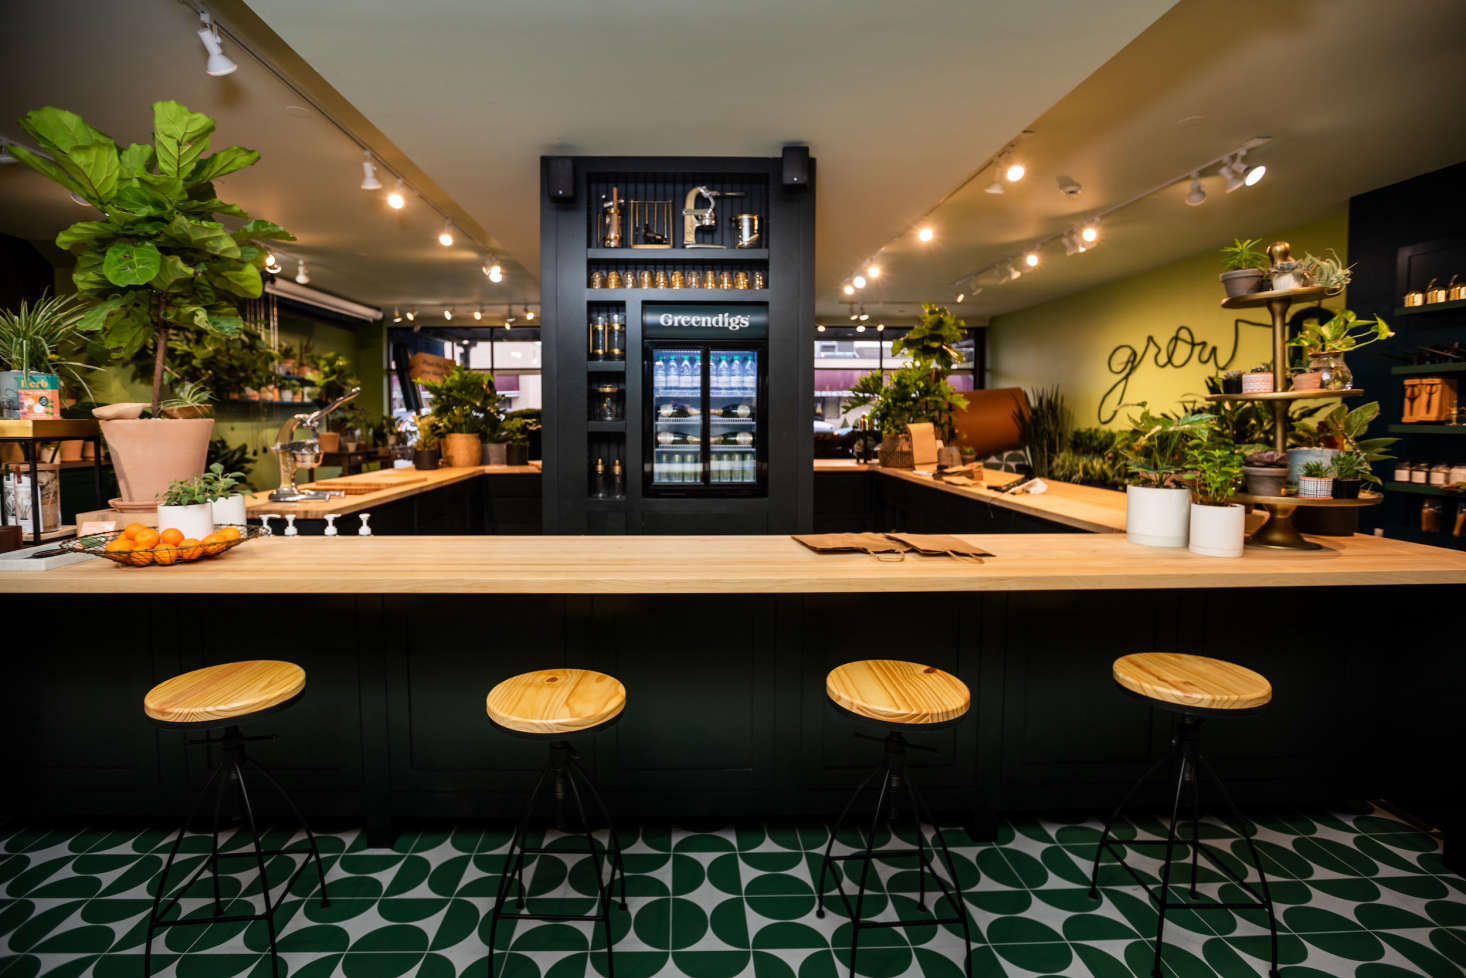 Anchoring (and centering) the space is a square wrap-around bar where customers can go to pay for their purchases, ask for help, even pull up a seat to enjoy a beverage. What inspired the design? &#8